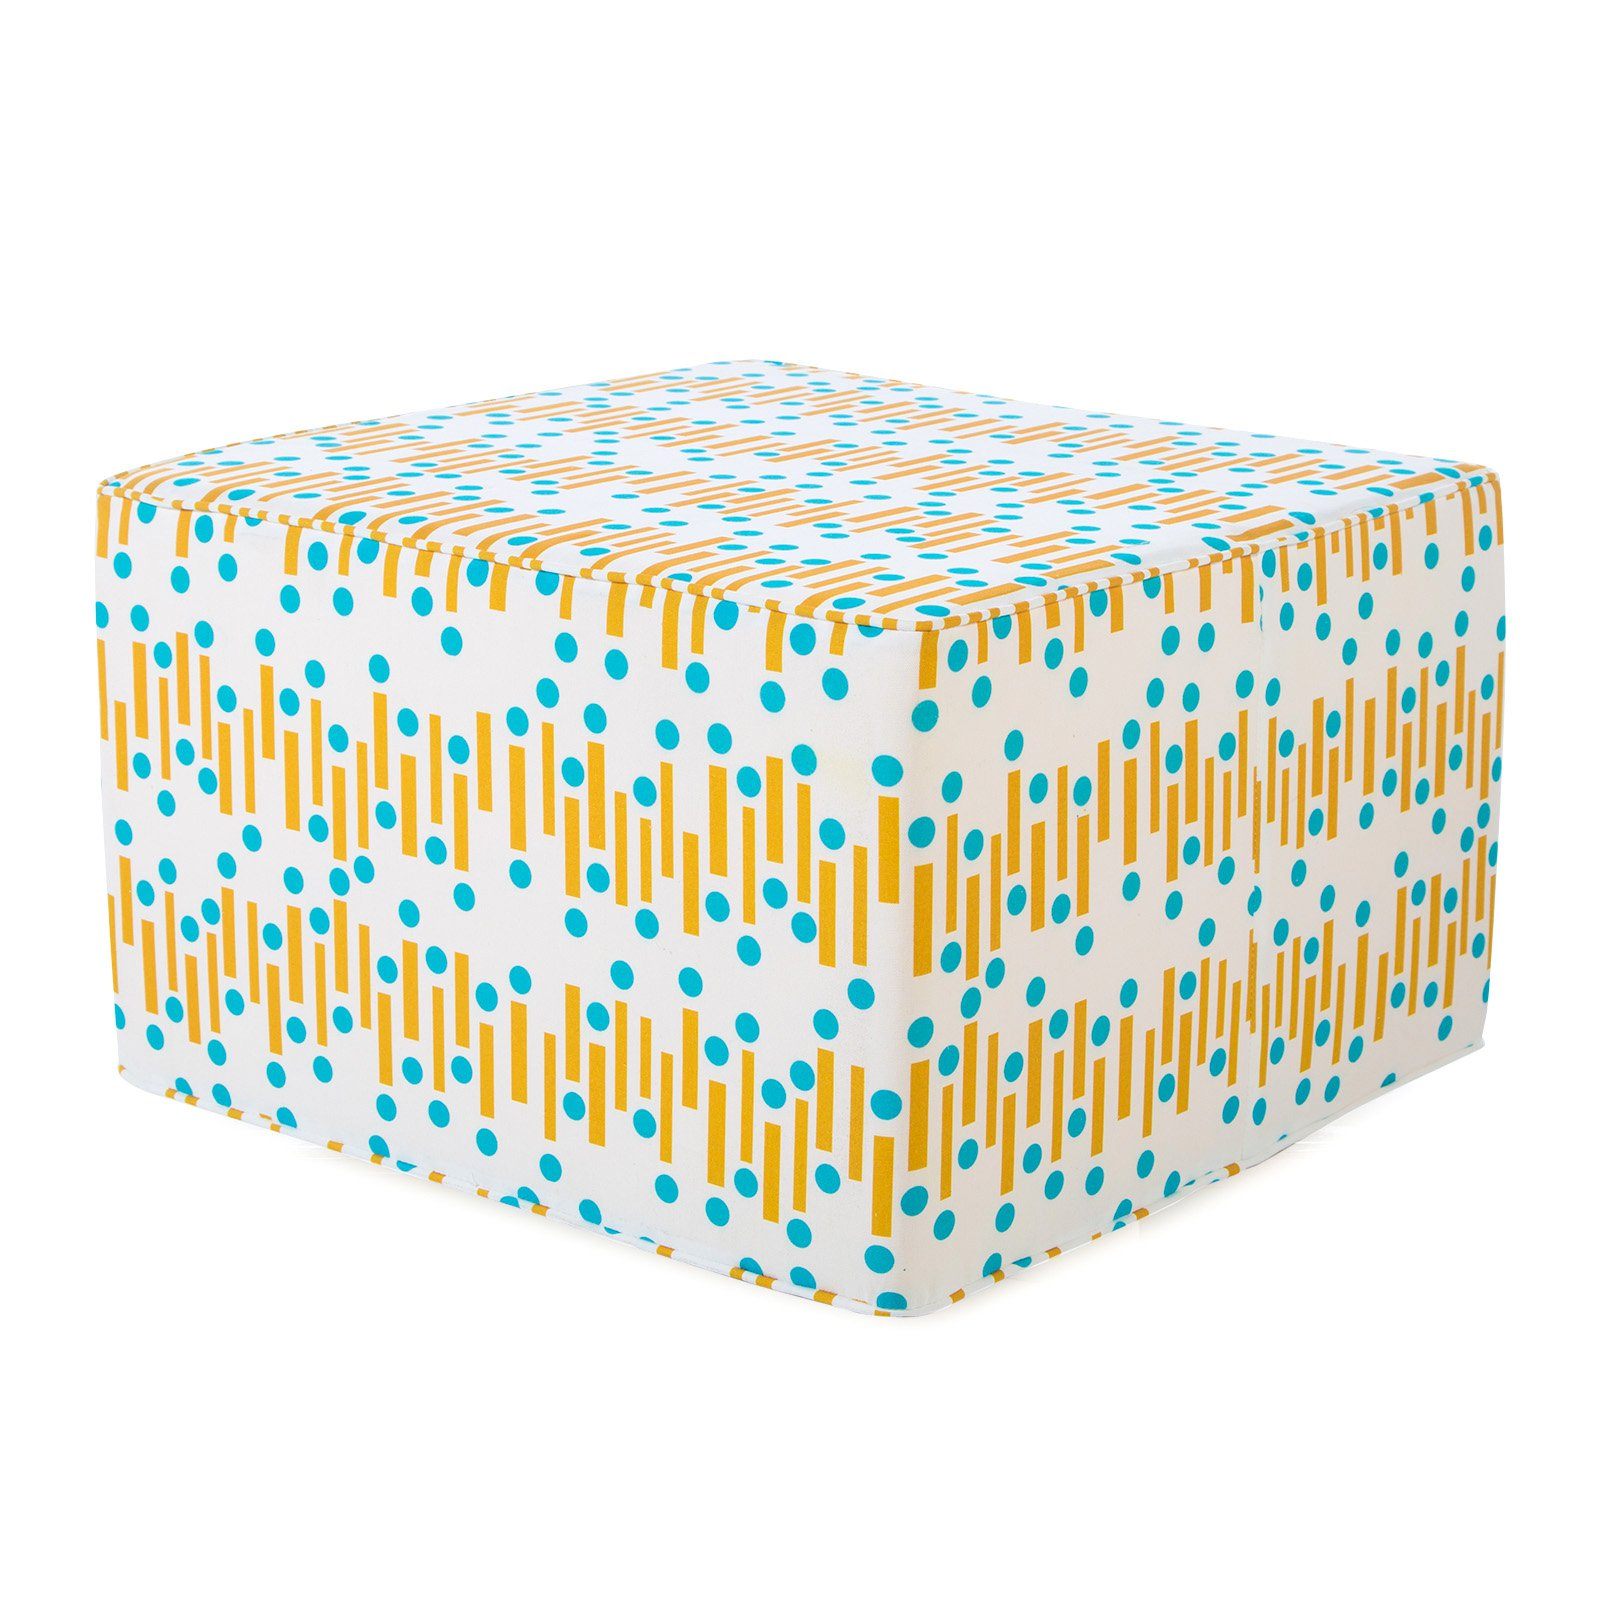 Coral Coast Mid-Century Modern 25 in. Square Pouf Outdoor Ottoman by